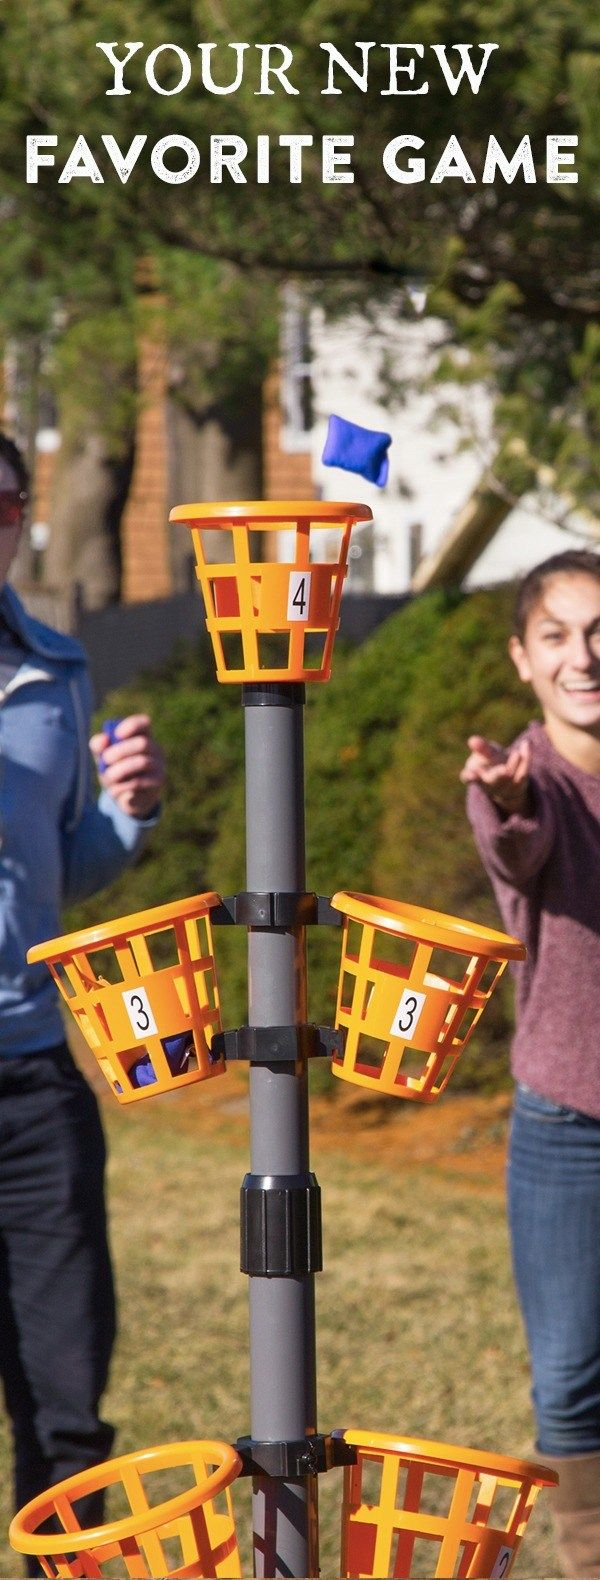 Camping Games - Take this portable game to the beach, camping, tailgating, or the backyard. It sets up fast and the rules are simple—toss bean bags into the baskets to score points.